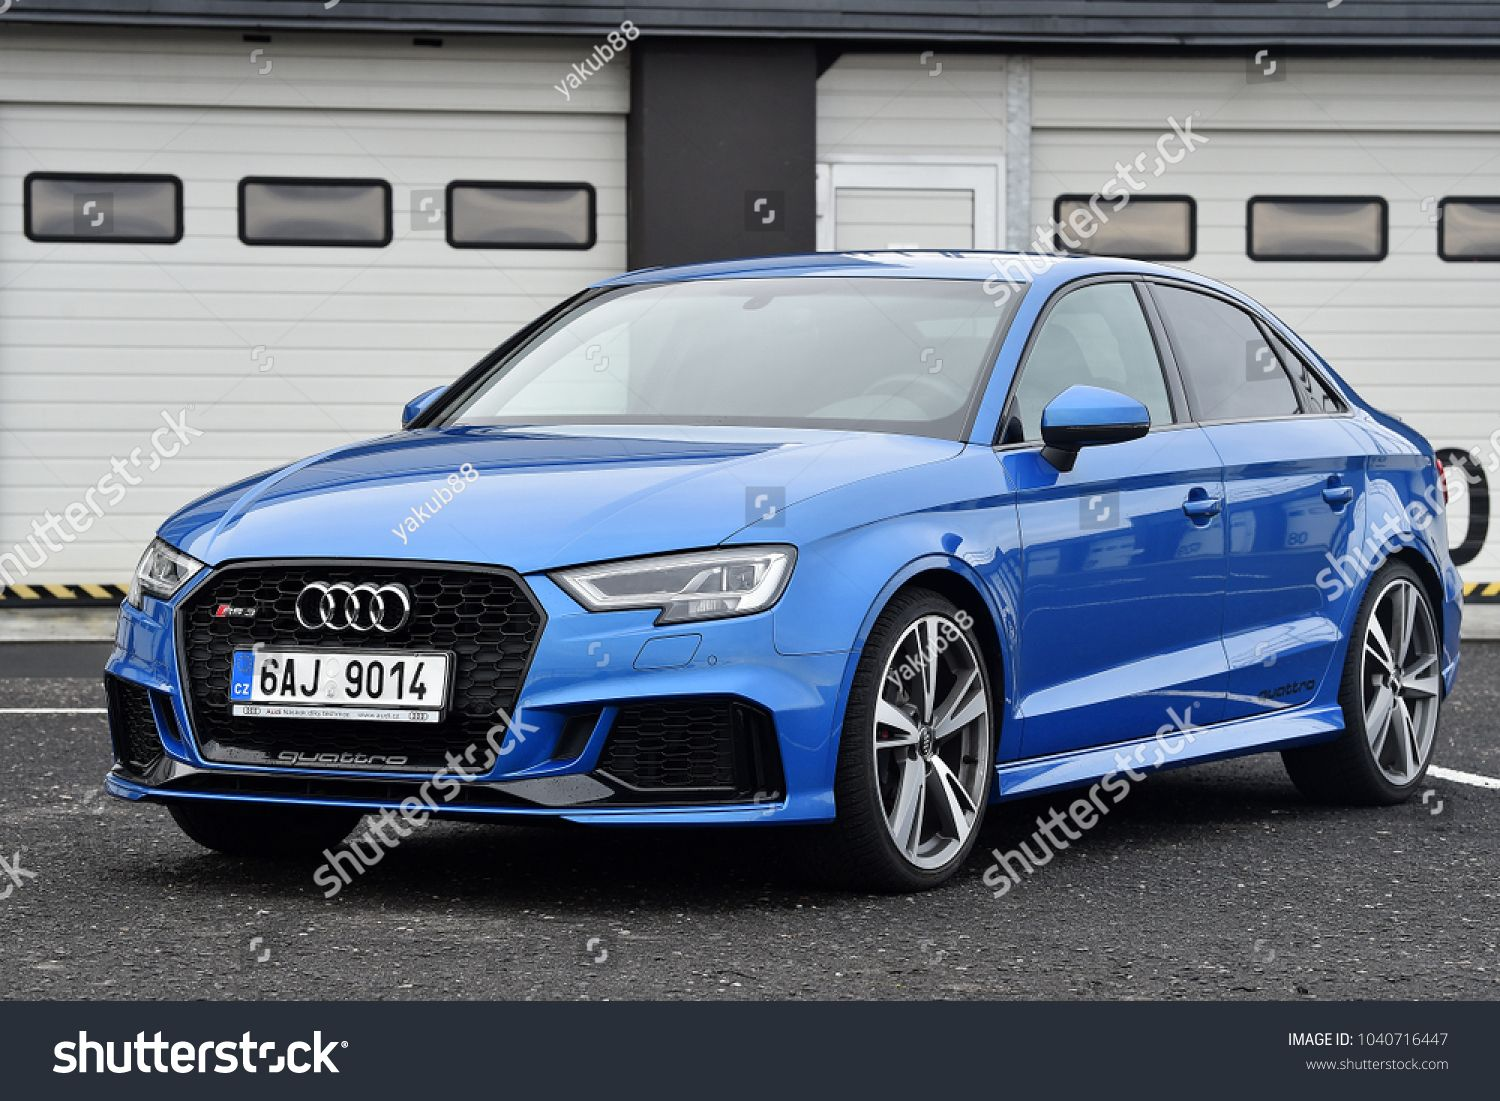 MOST, CZECH REPUBLIC - JANUARY 5, 2018: Audi RS3 in Most, Czech republic, January 5, 2018. #Ad , #sponsored, #Audi#JANUARY#CZECH#REPUBLIC